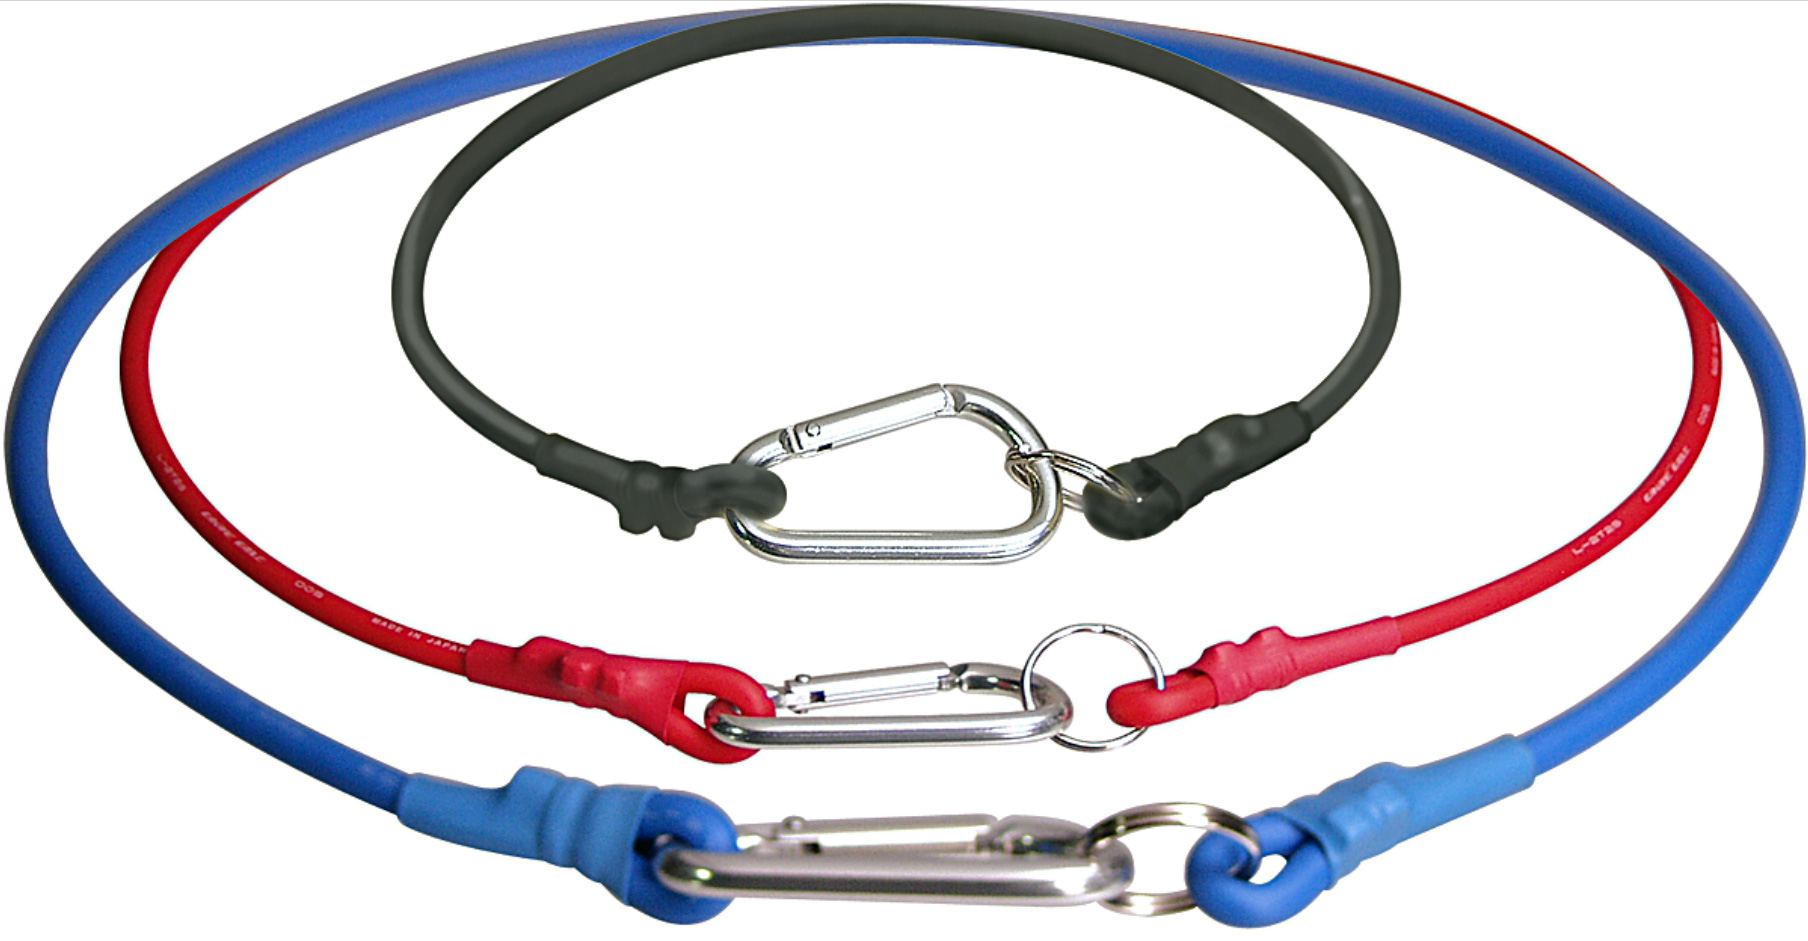 Gaffers Tape Holder Strap - 1 Foot Loop GT-CTS1